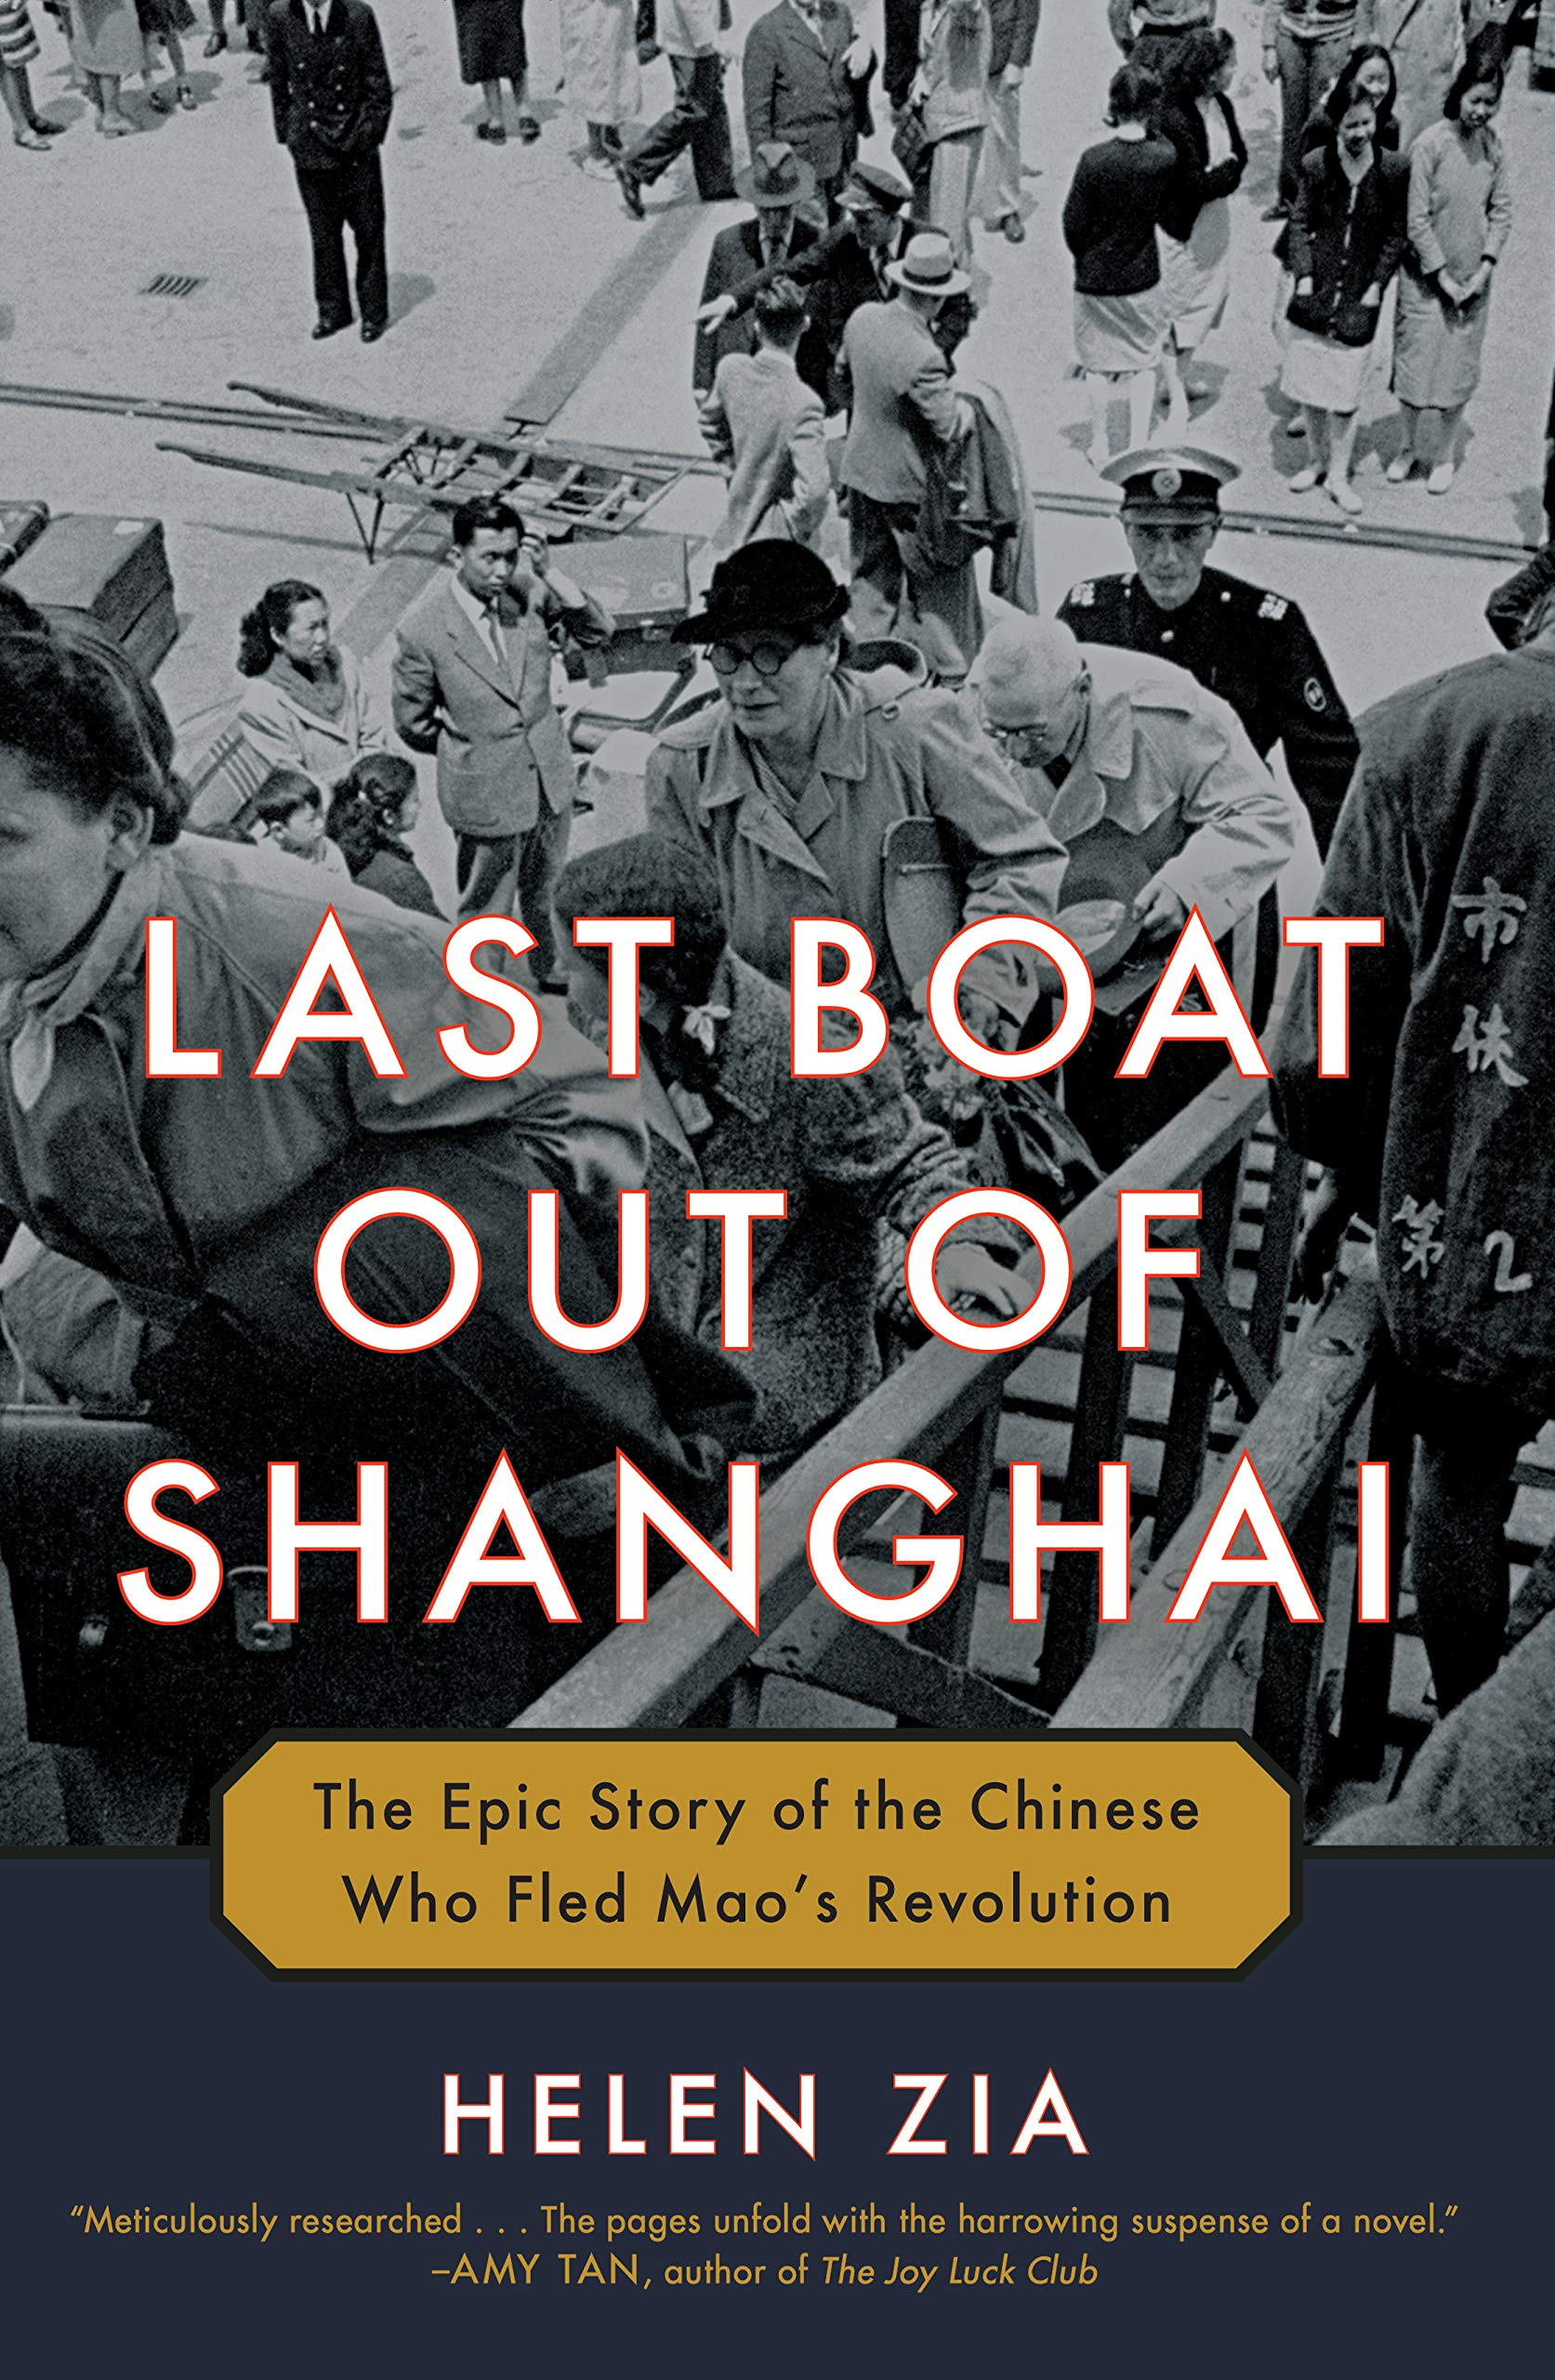 Amazon.com: Last Boat Out of Shanghai: The Epic Story of the Chinese Who  Fled Mao's Revolution (9780345522320): Helen Zia: Books